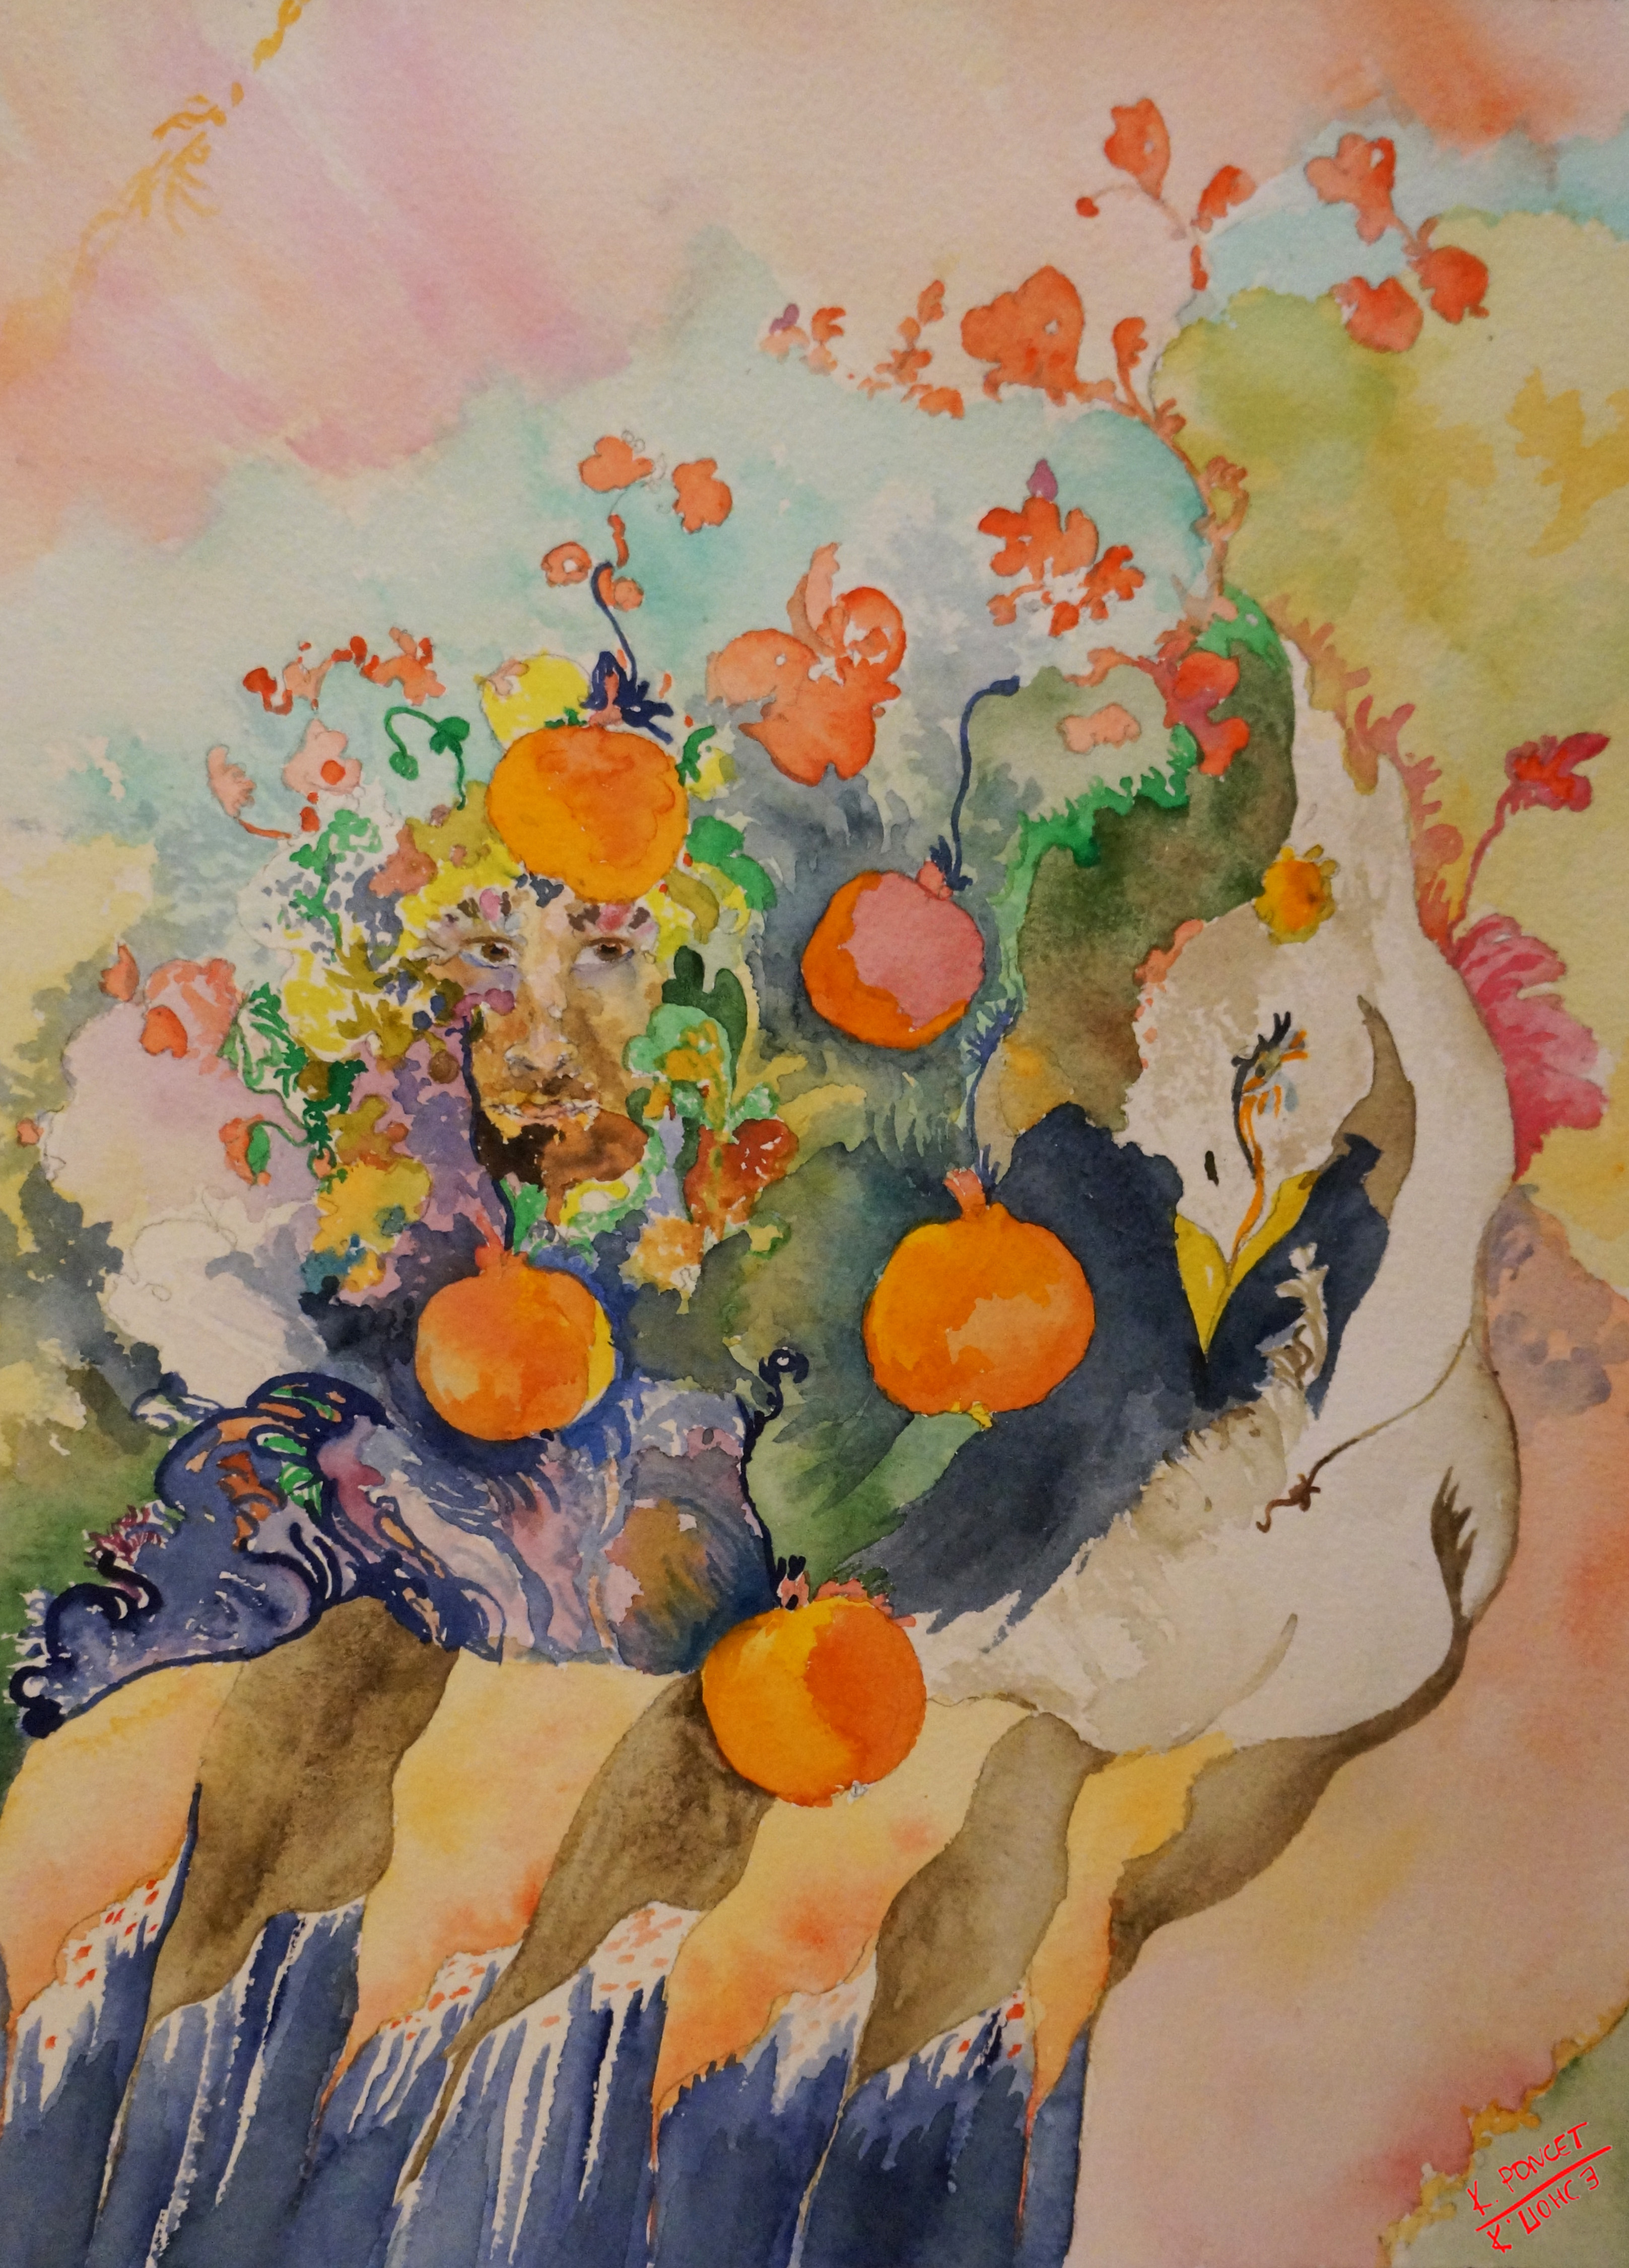 Composition with swan, human face, pomegranates and flowers